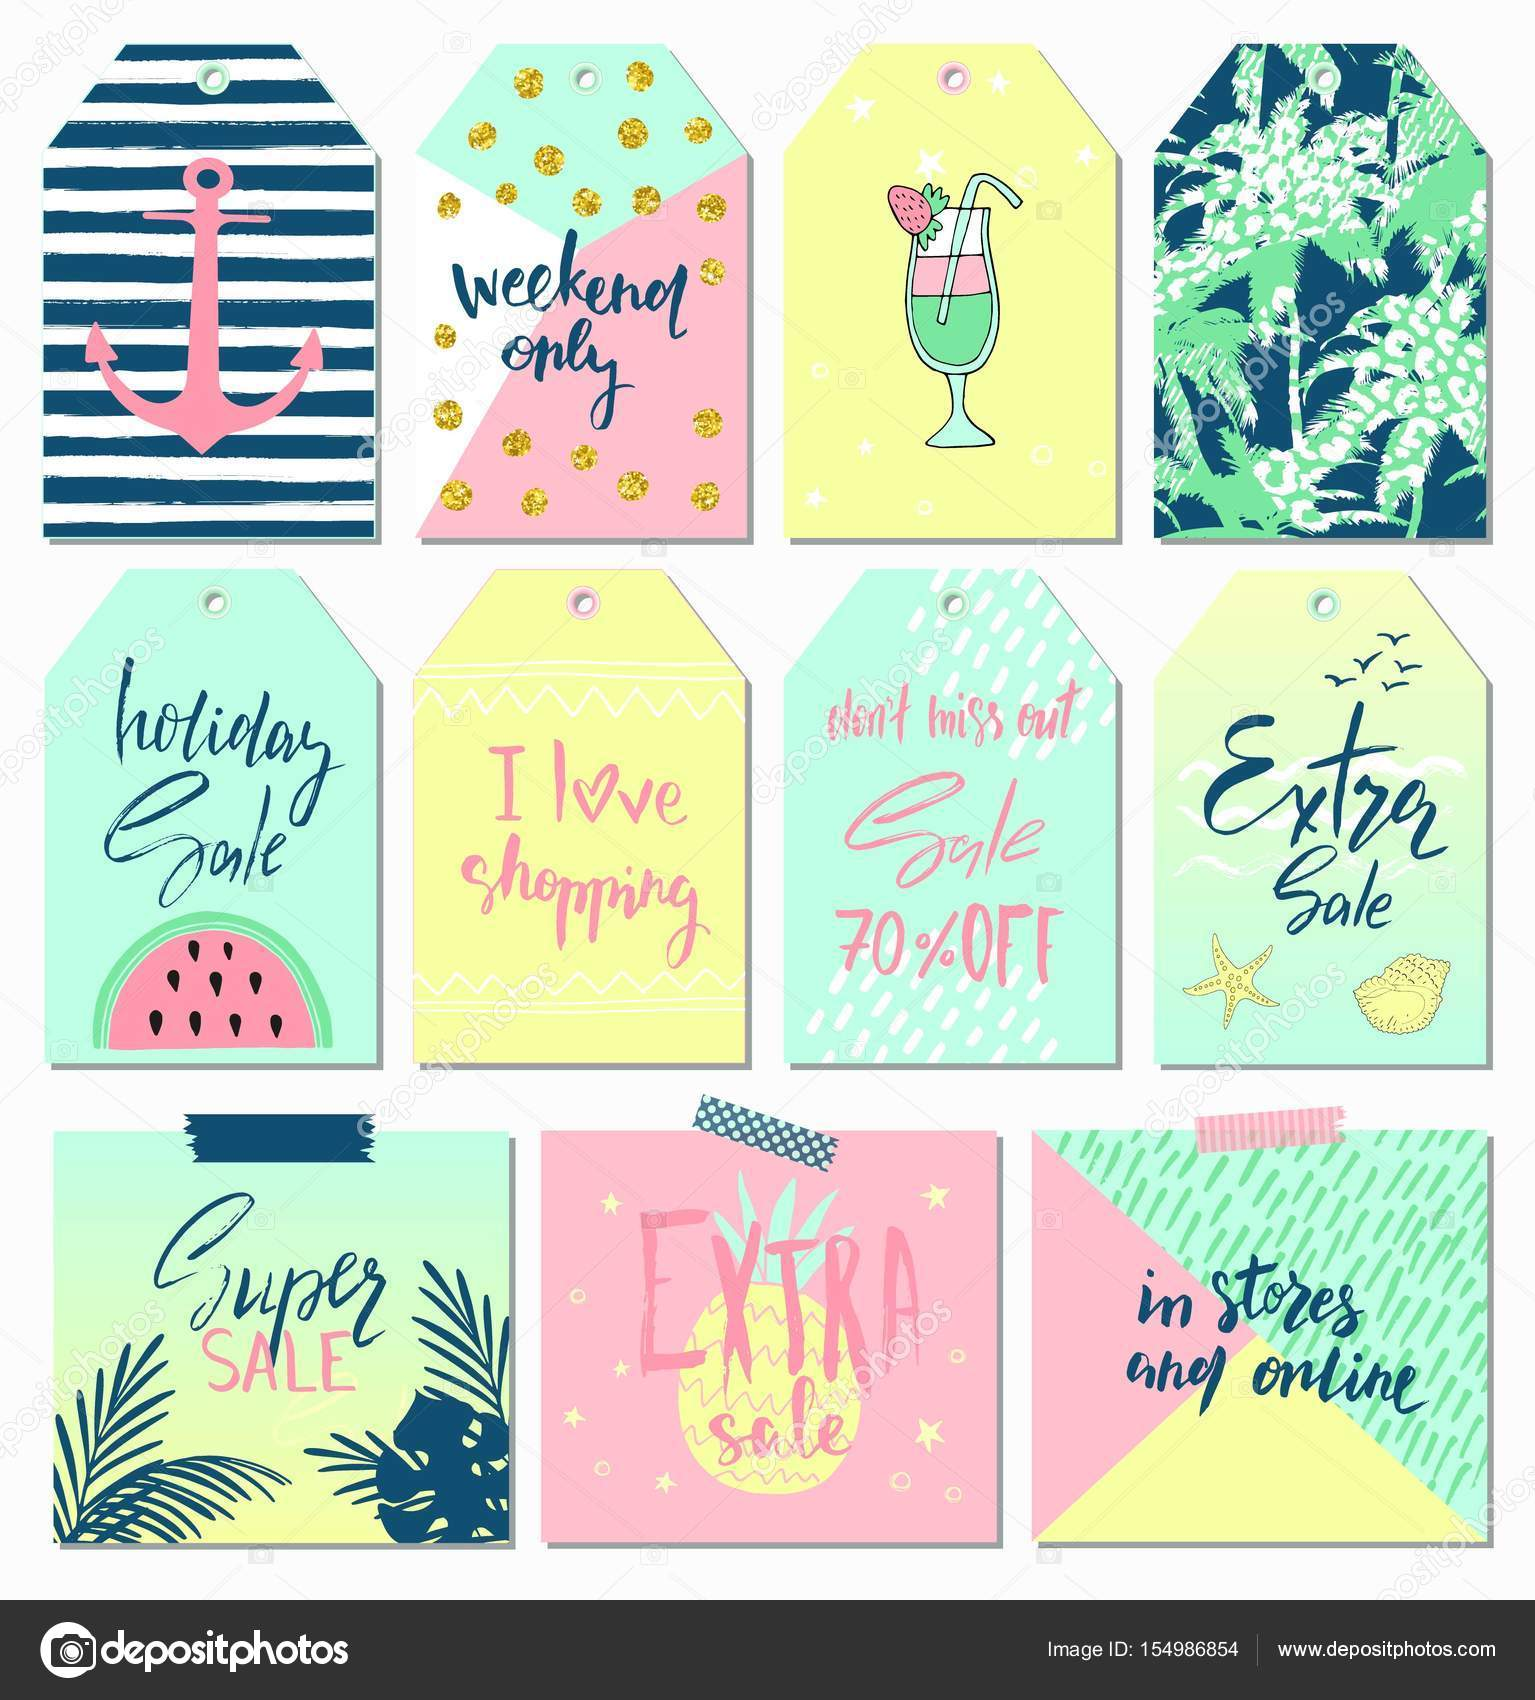 Summer Set Of Sale And Gift Tags Labels With Cute Hand Drawn Design Elements Handwritten Lettering And Textures Vector Illustration Stock Vector C Infectsiya Mail Ru 154986854